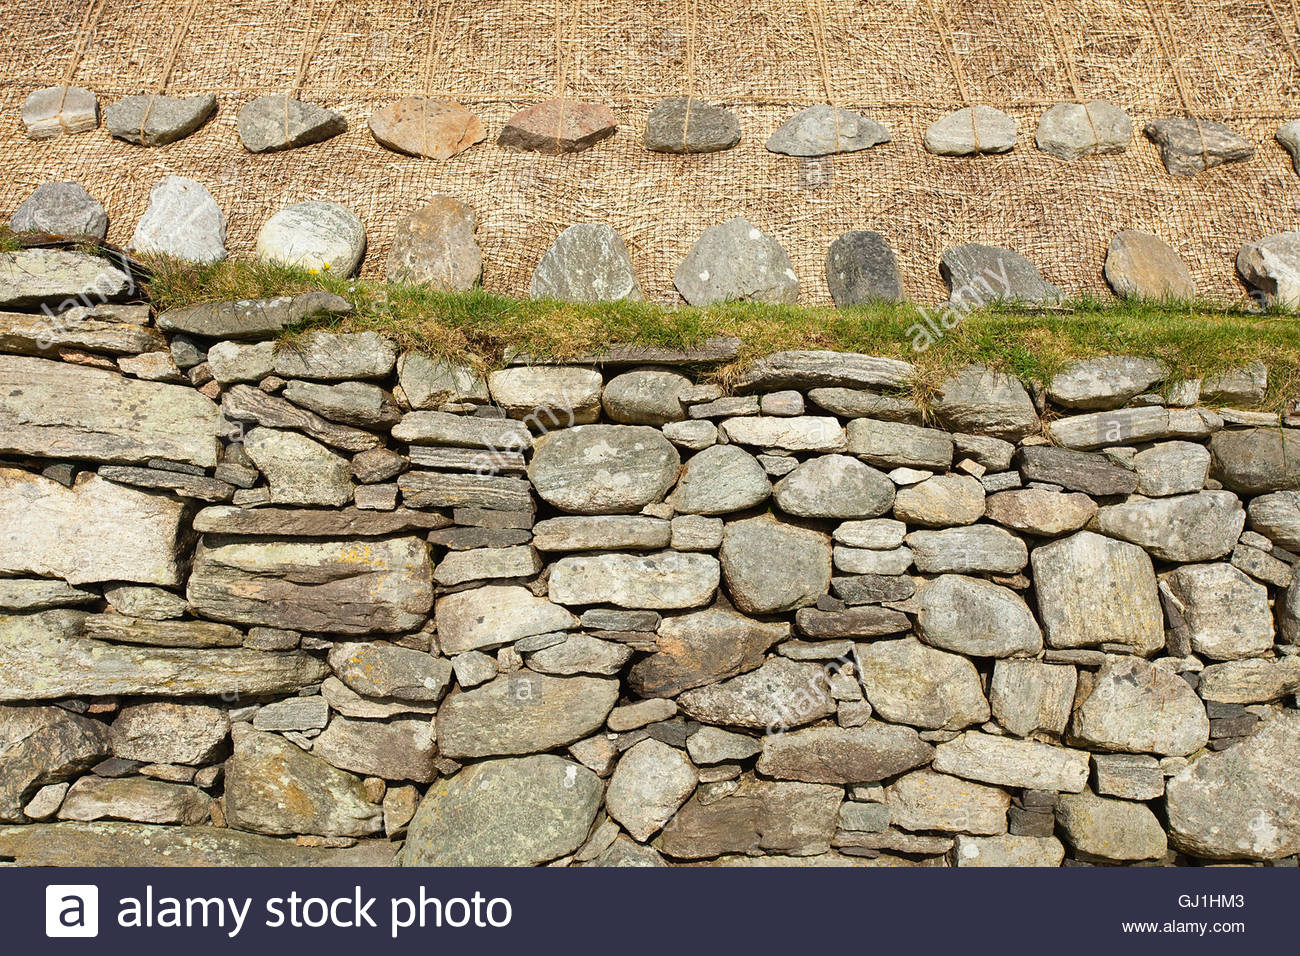 A detail of the rocks and netting holding down the thatch of the Blackhouse, Arnol, Isle of Lewis, Outer Hebrides. Stock Photo